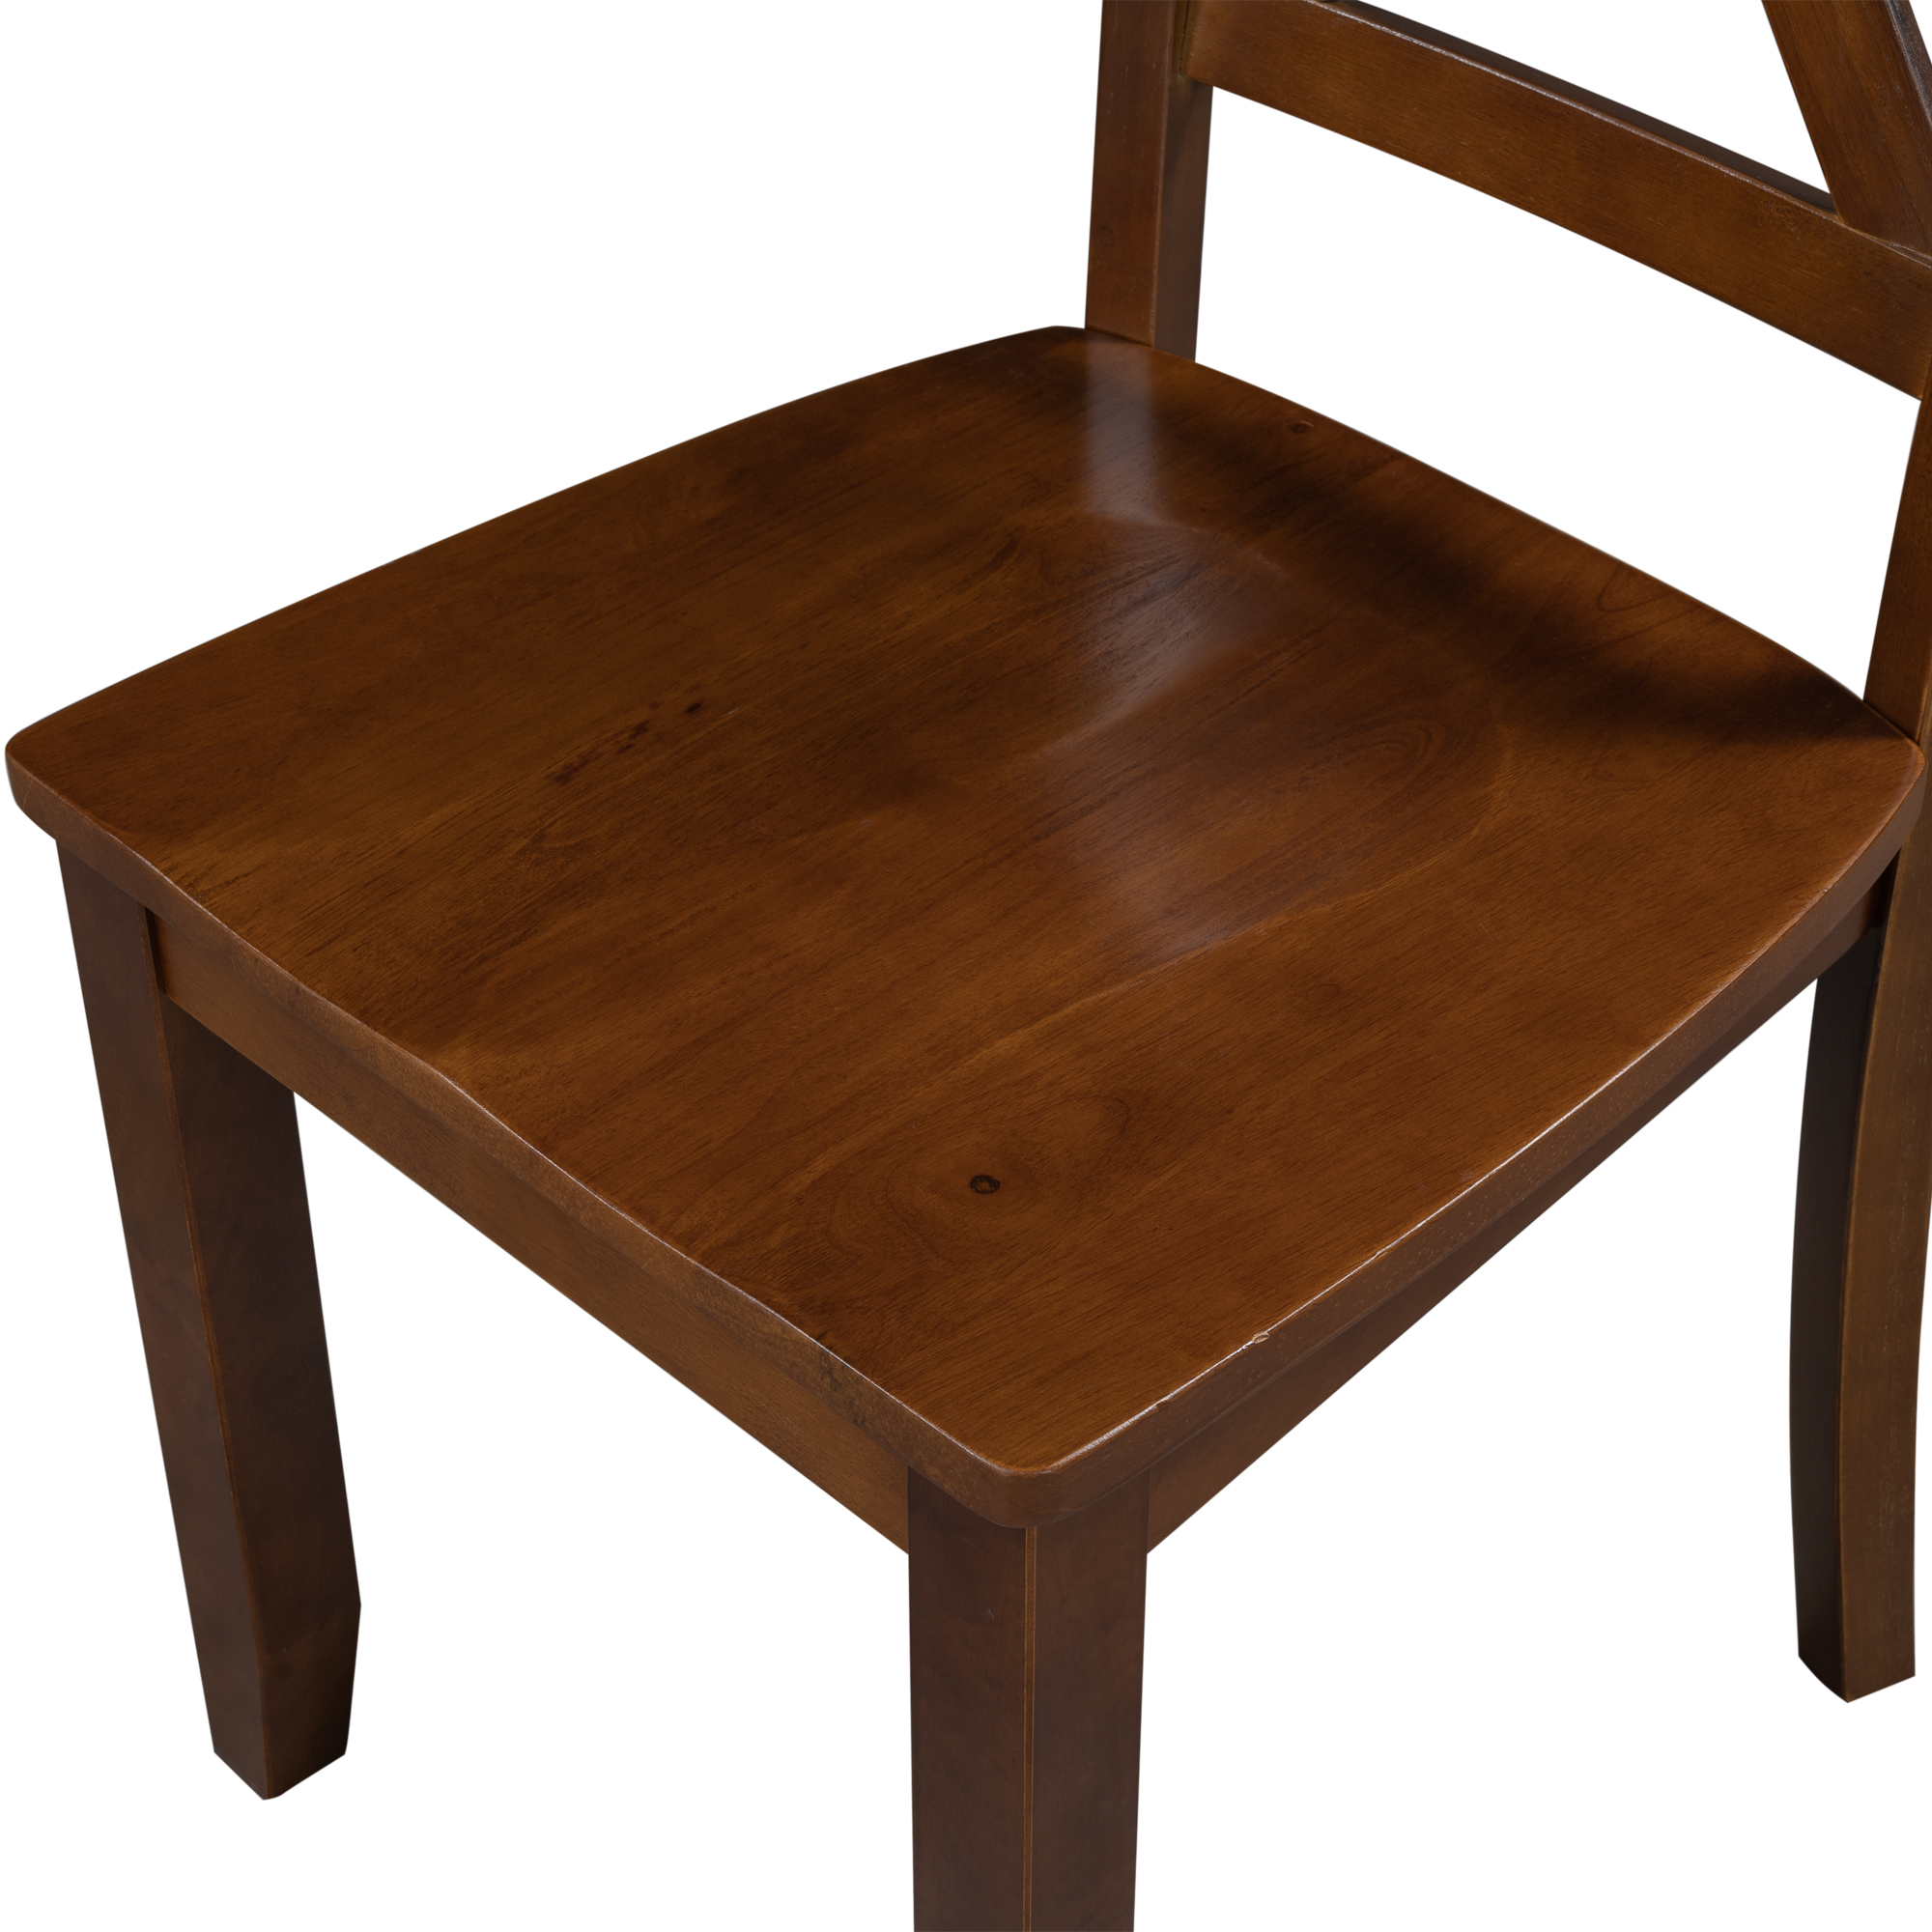 2-Piece X-back Wood Breakfast Nook Dining Chairs